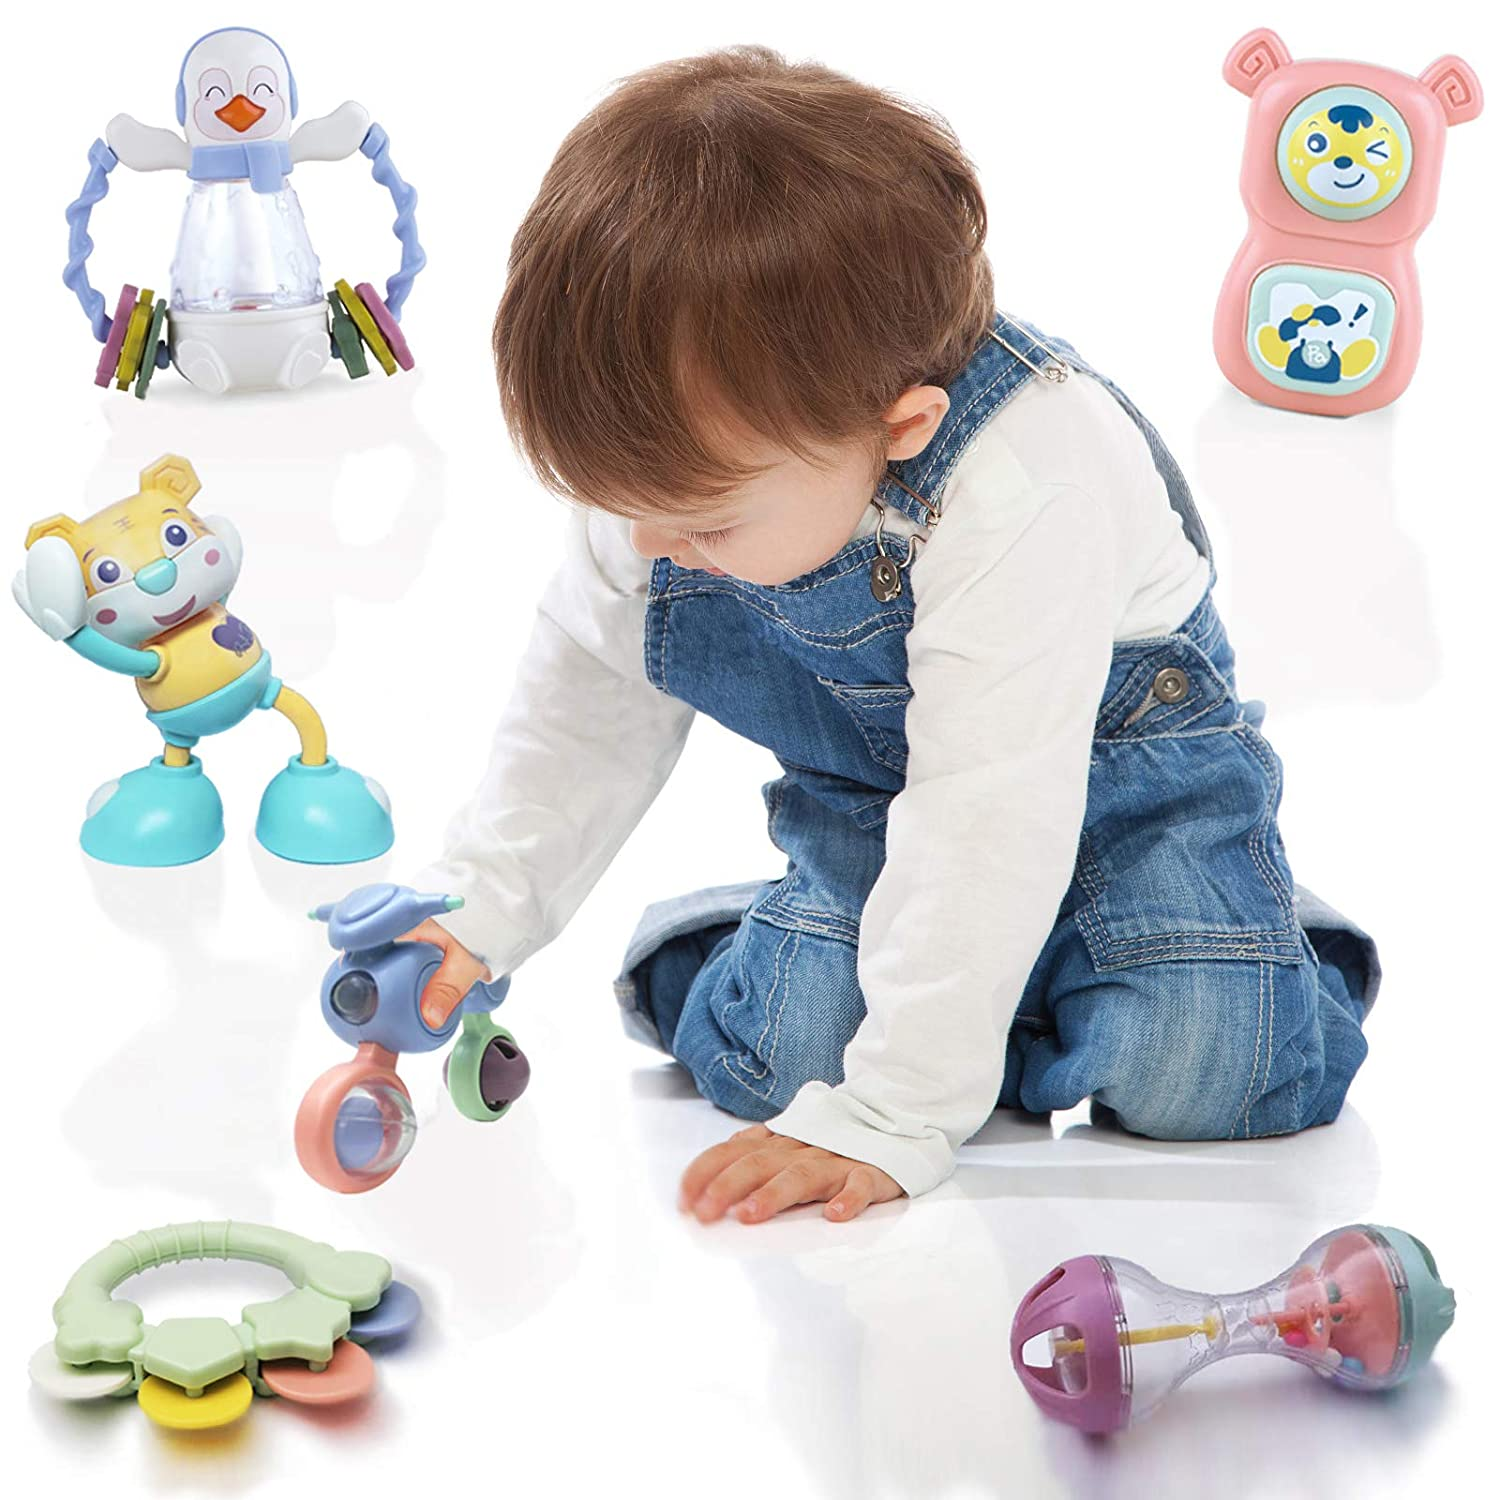 Luddy Baby Rattle Toys Newborn Gift Rattles Set Shaking Hum Dumbell Horn Sensory Toy for 6 to 12 Months 8 PCS